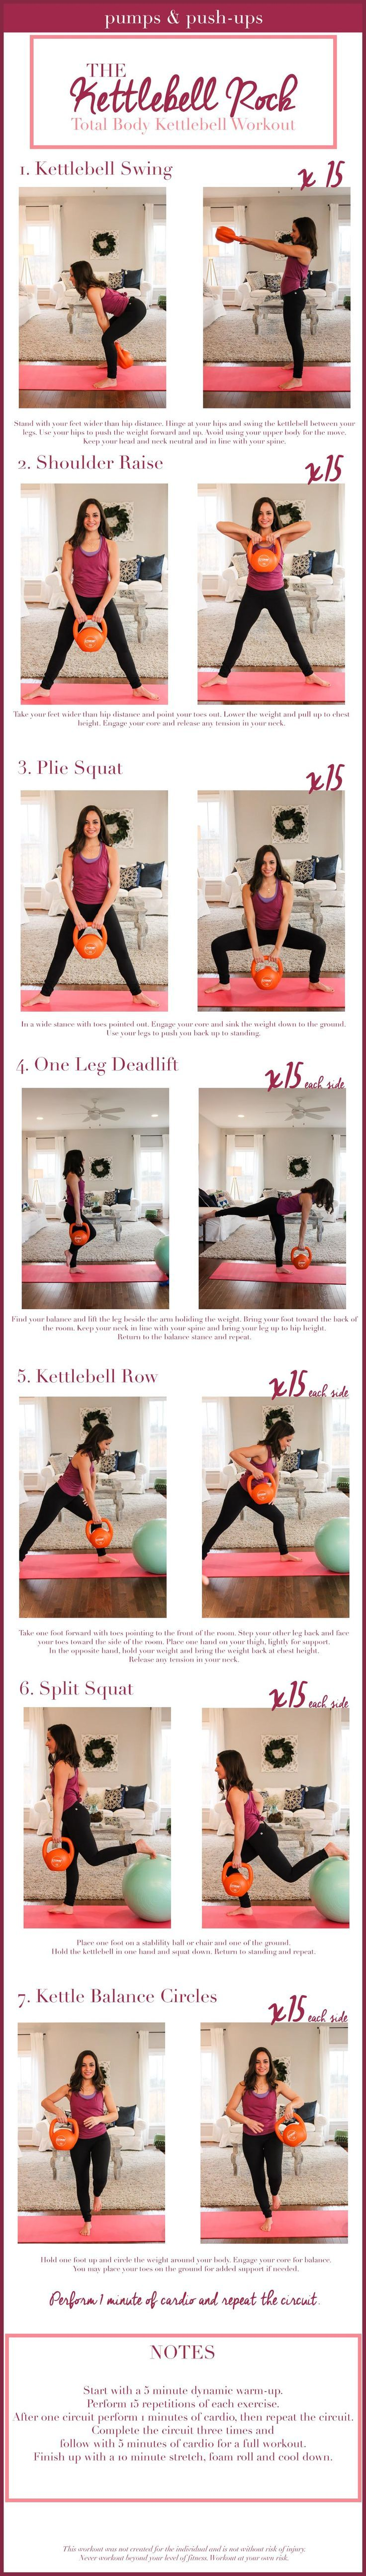 Kettlebell workout at home workout using a stability